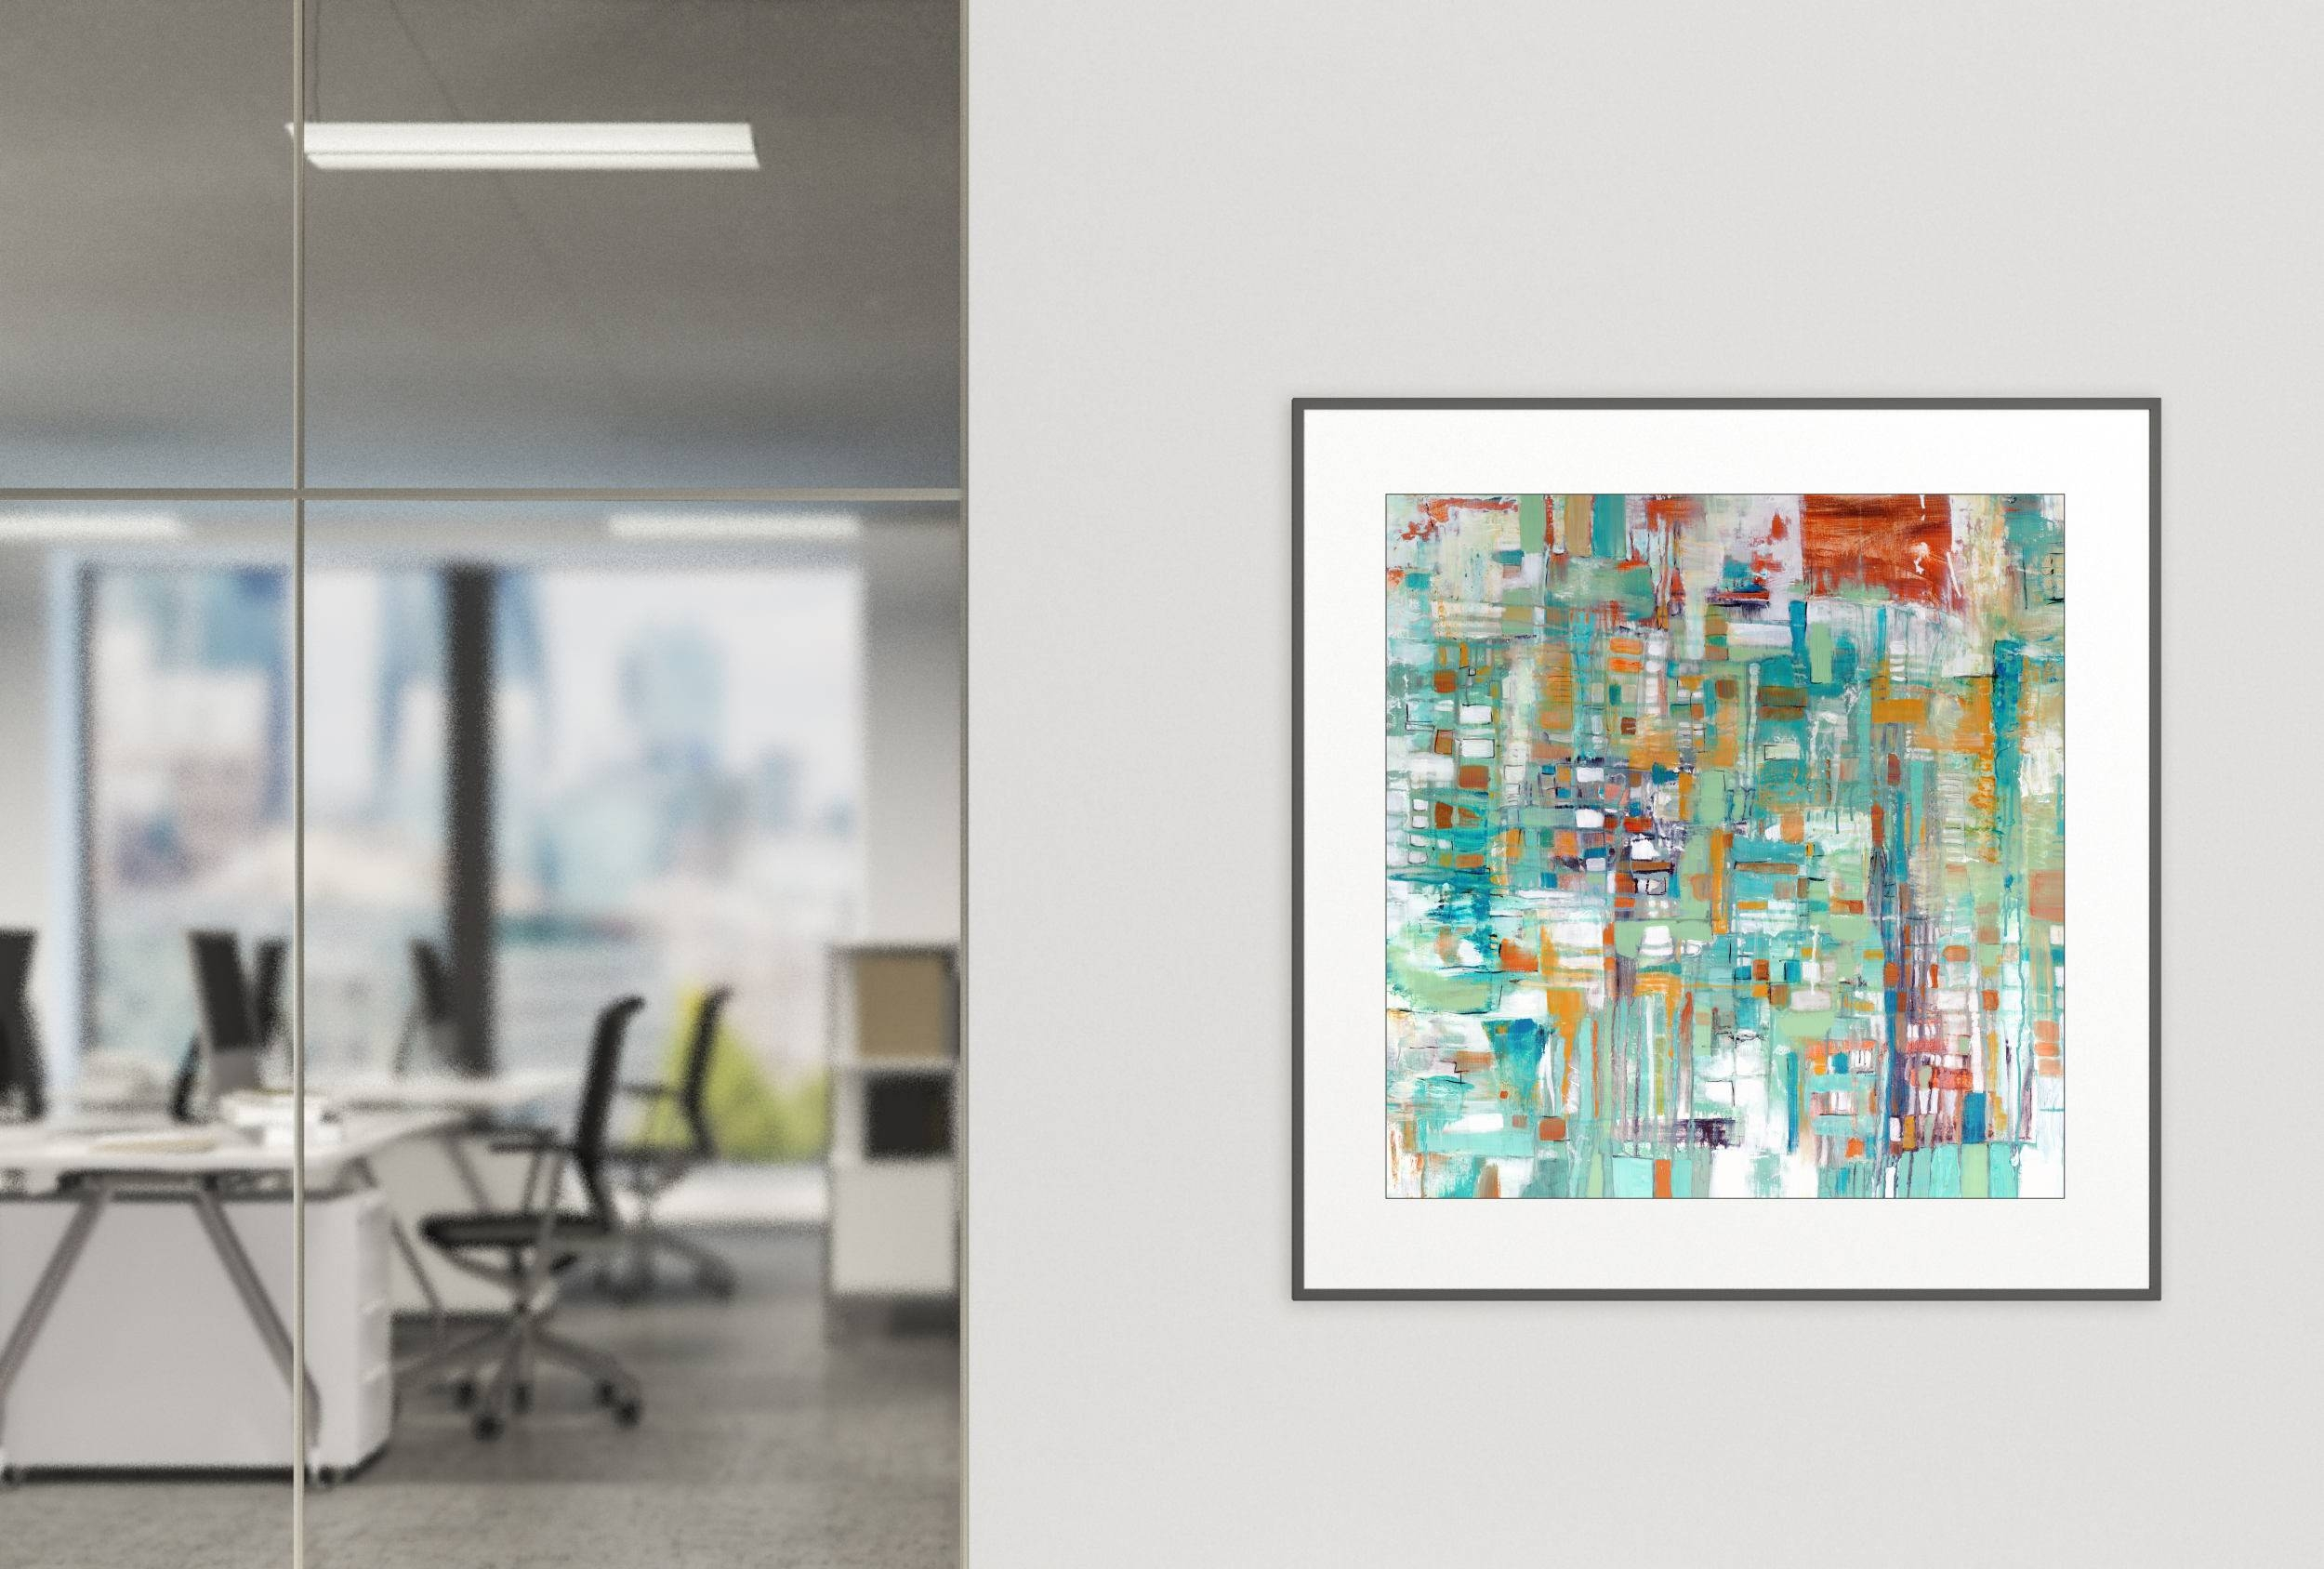 Gallery Art Print, Commercial Abstract Art Print, Hotel Wall Art Inside Most Recently Released Commercial Wall Art (View 2 of 20)